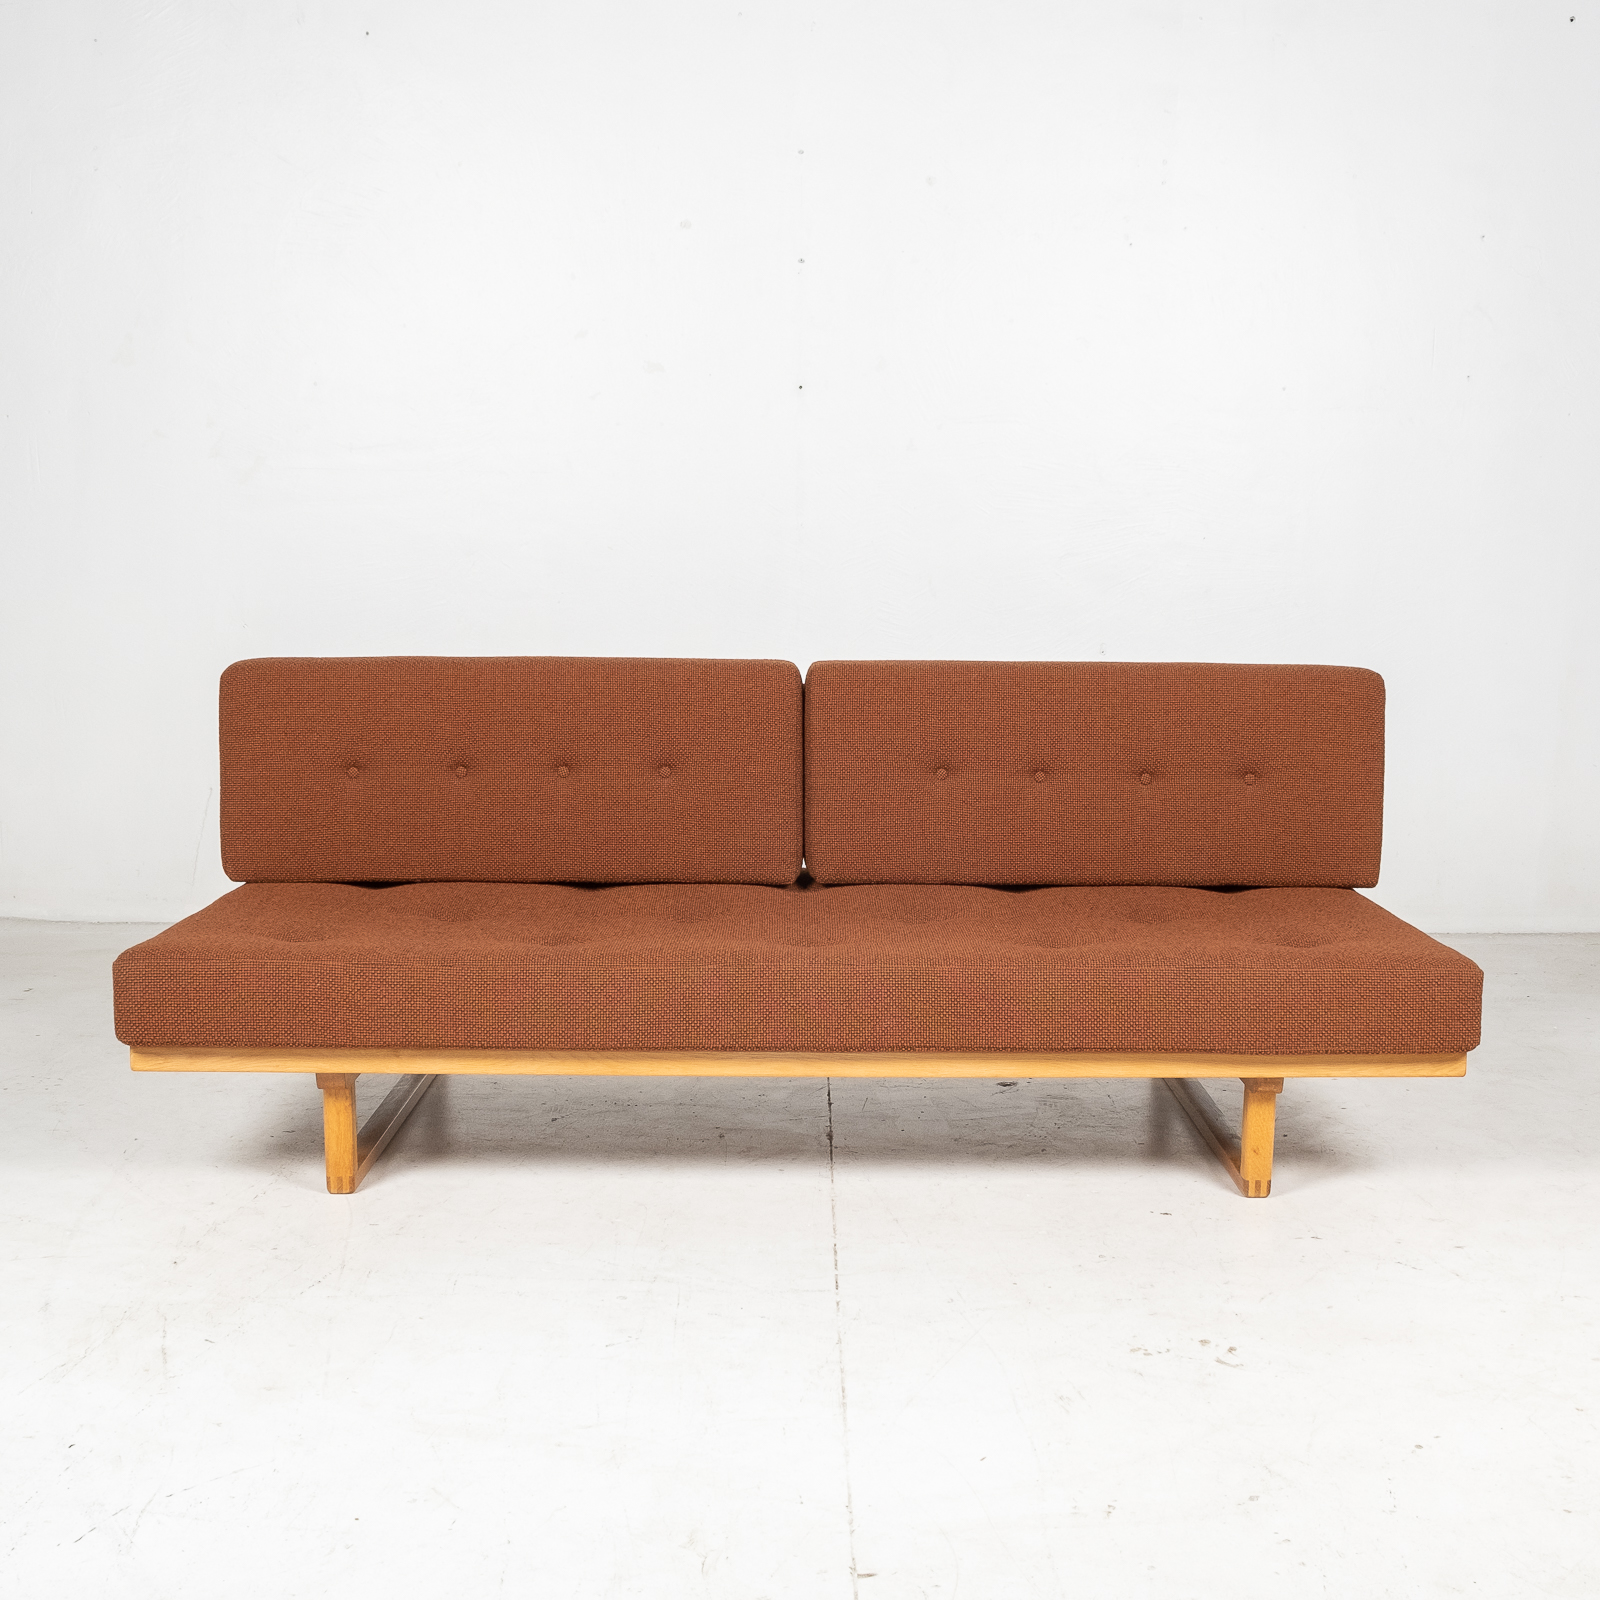 Model 4312 Daybed By Borge Mogensen For Fredericia Stolefabrik In Oak And New Kvadrat Wool Upholstery, Denmark, 1950s1